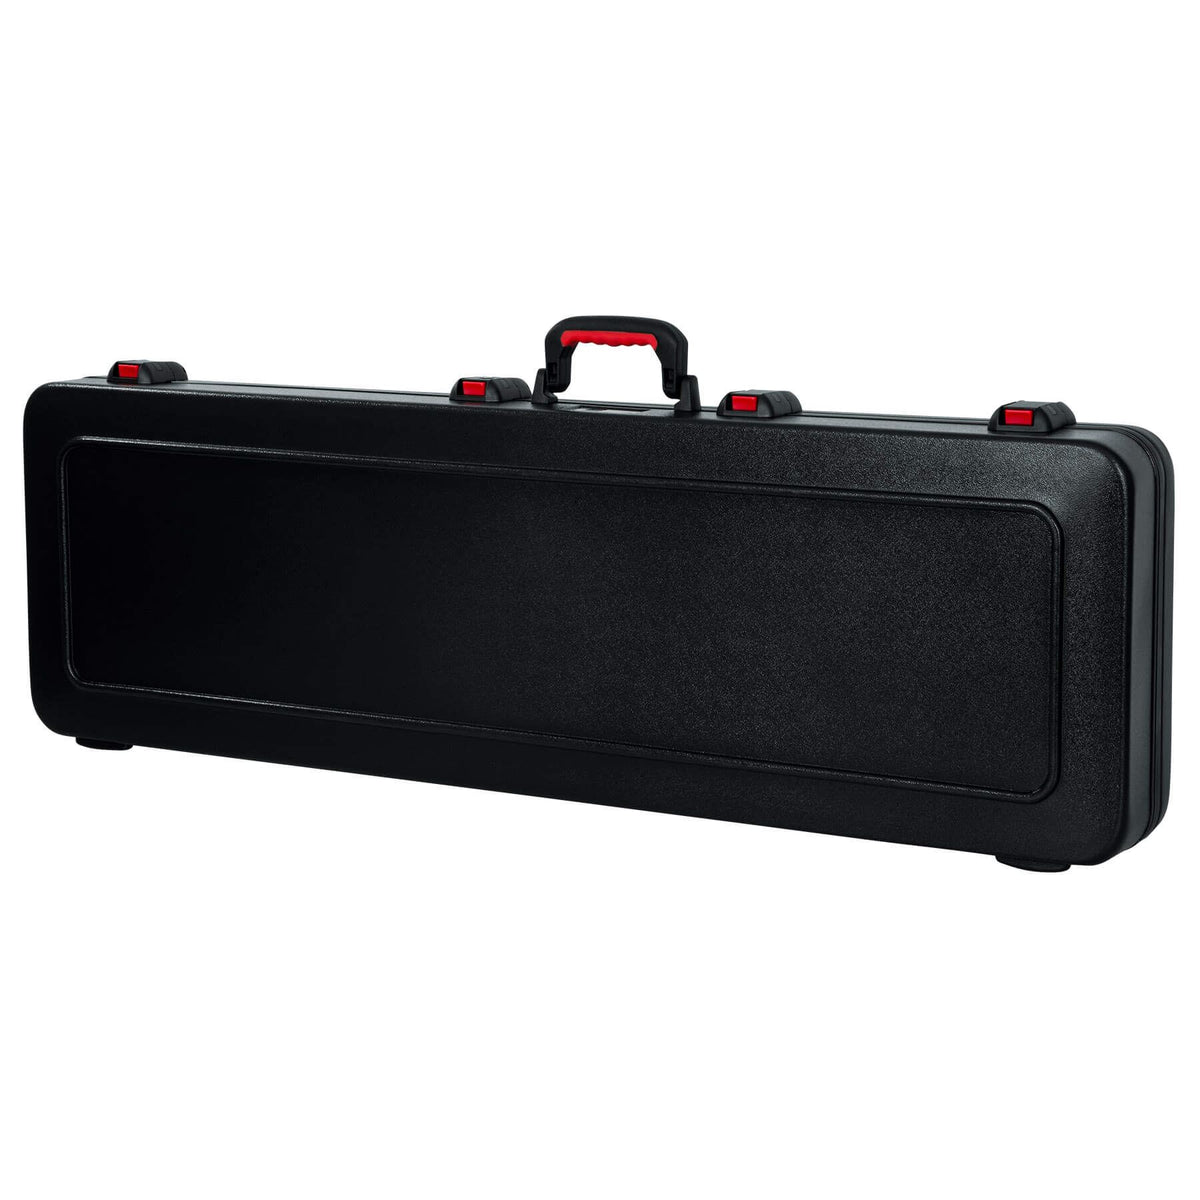 Gator ATA Bass Guitar Case fits Fender Jaguar Bass